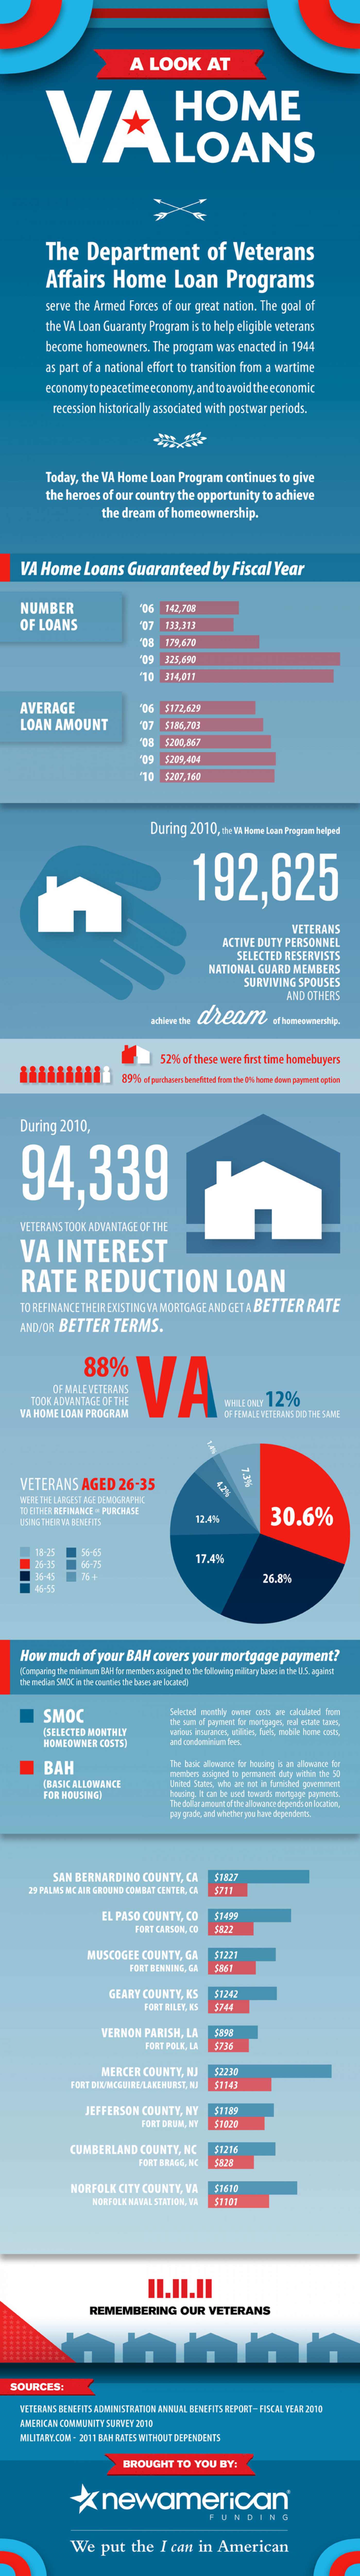 VA Home Loans Infographic